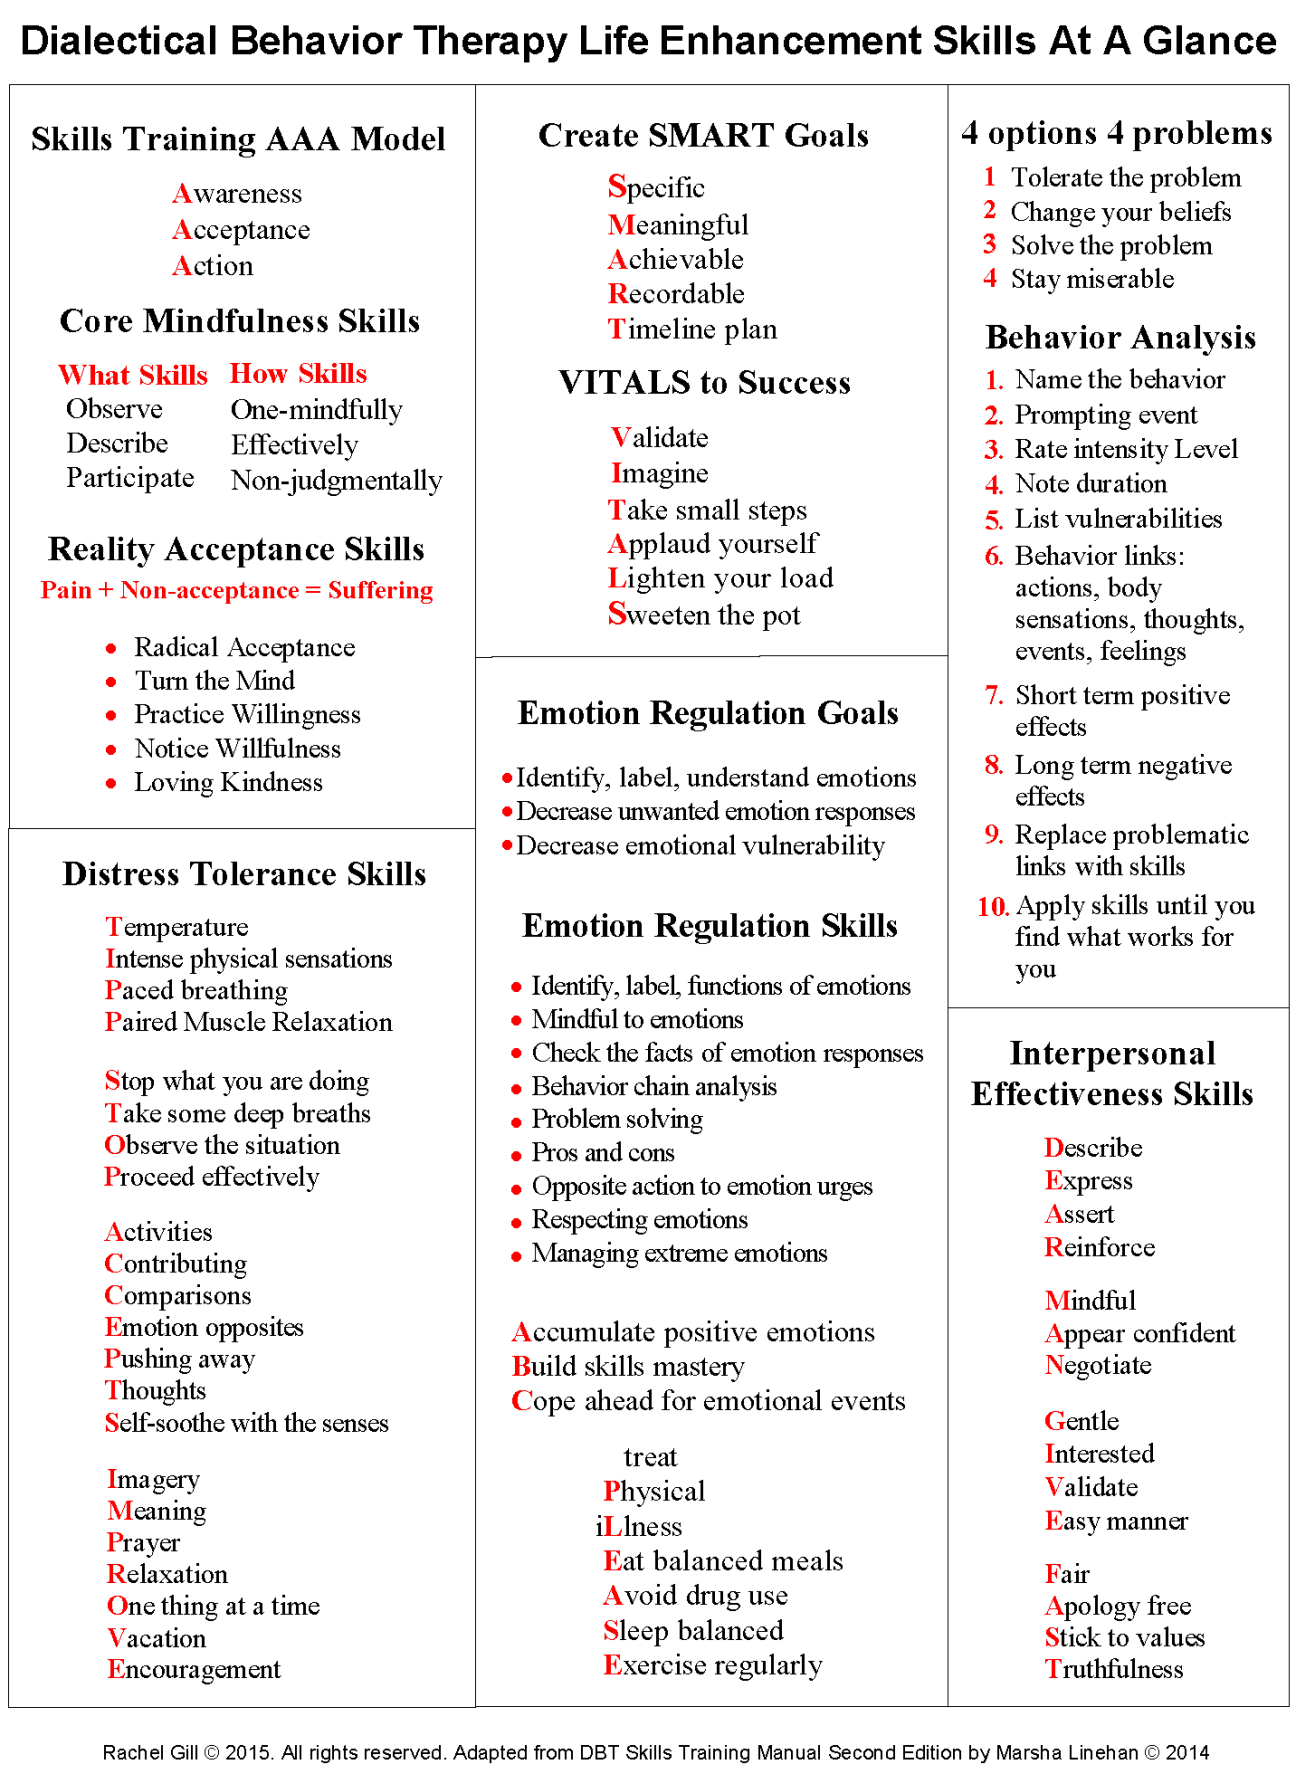 Dbt Handouts & Worksheets   Dbt Peer Connections   Self Study - Free   Free Printable Coping Skills Worksheets For Adults